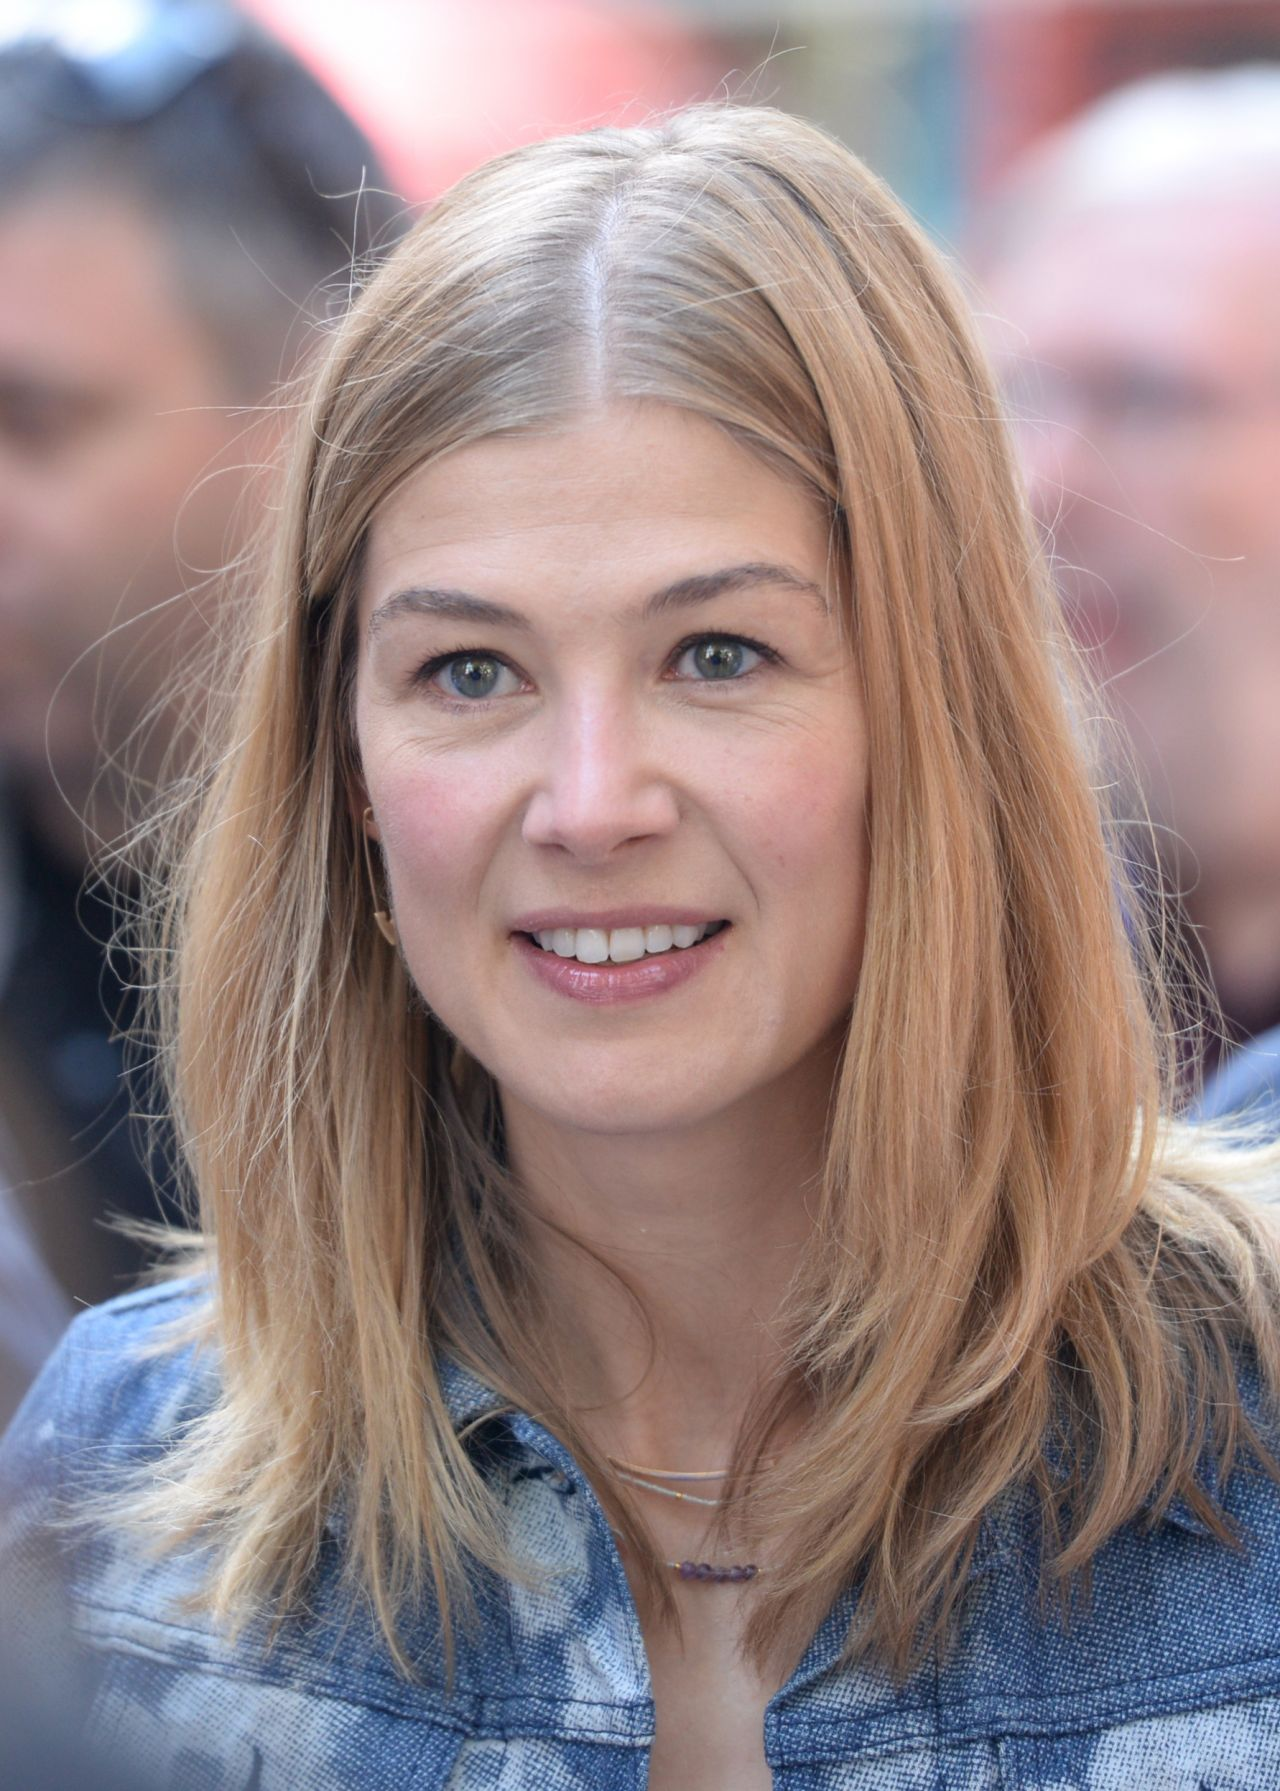 Rosamund Pike Telluride Film Festival In Colorado 09 02 2017